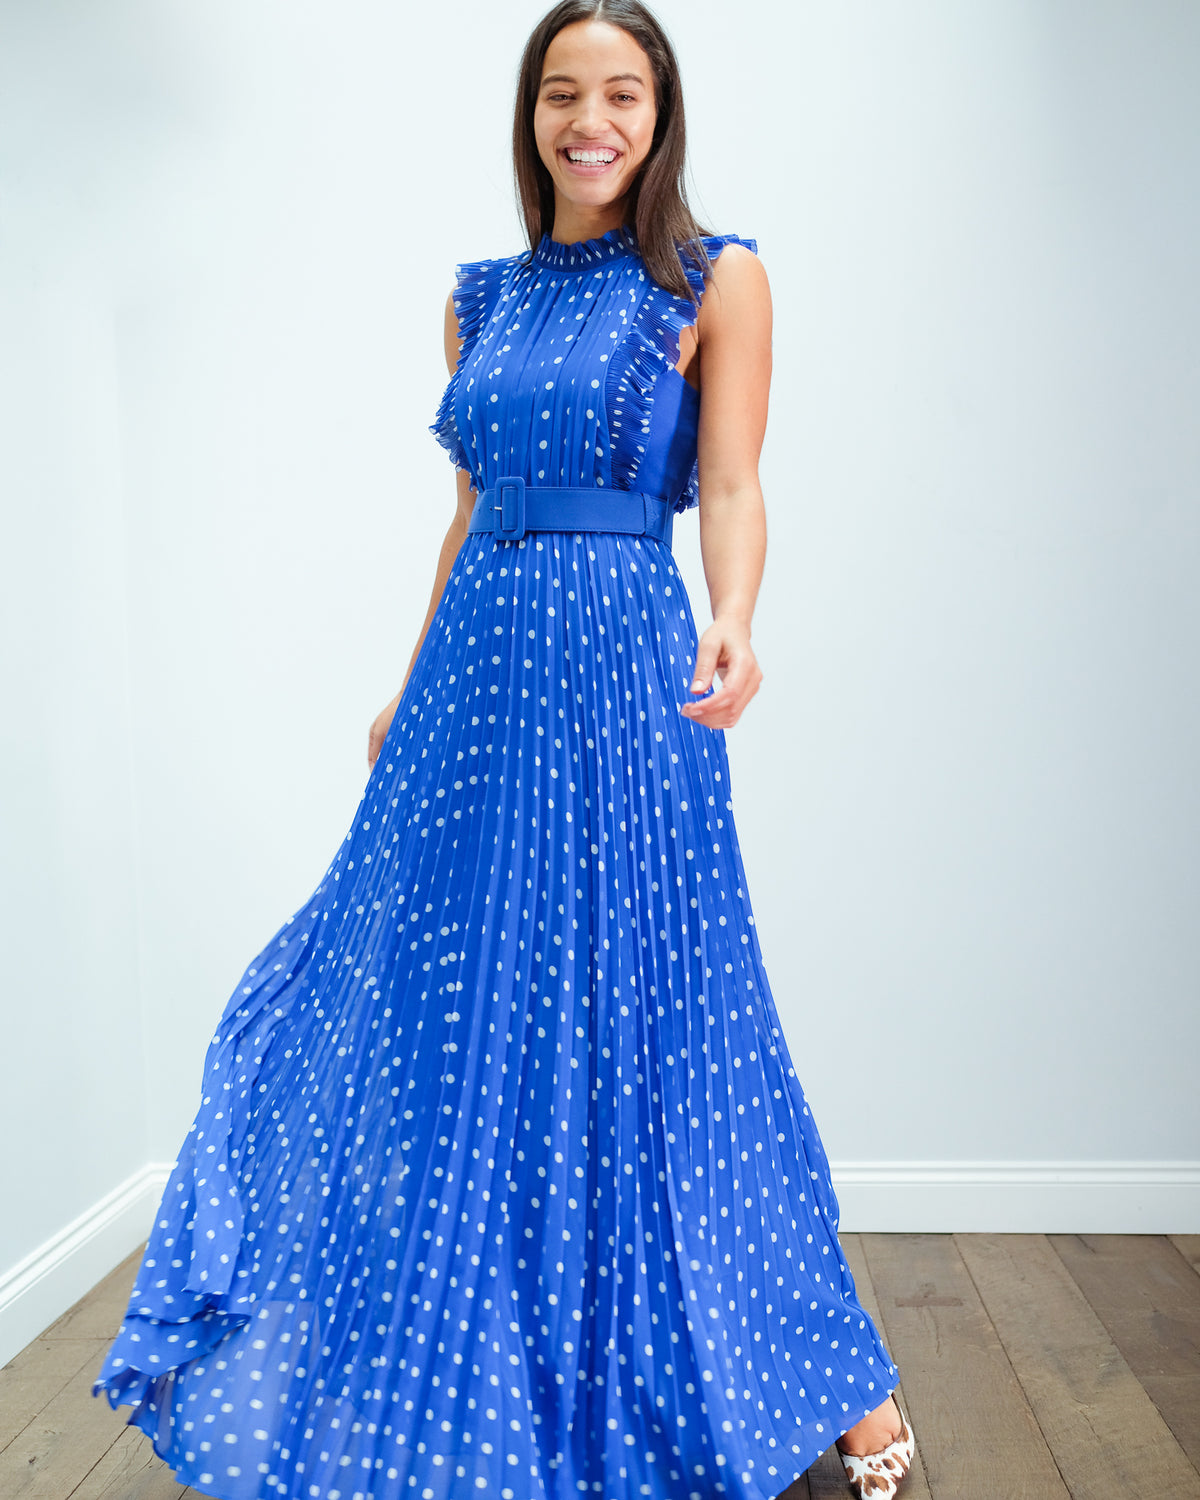 SP 132 Polka dot chiffon maxi dress in blue